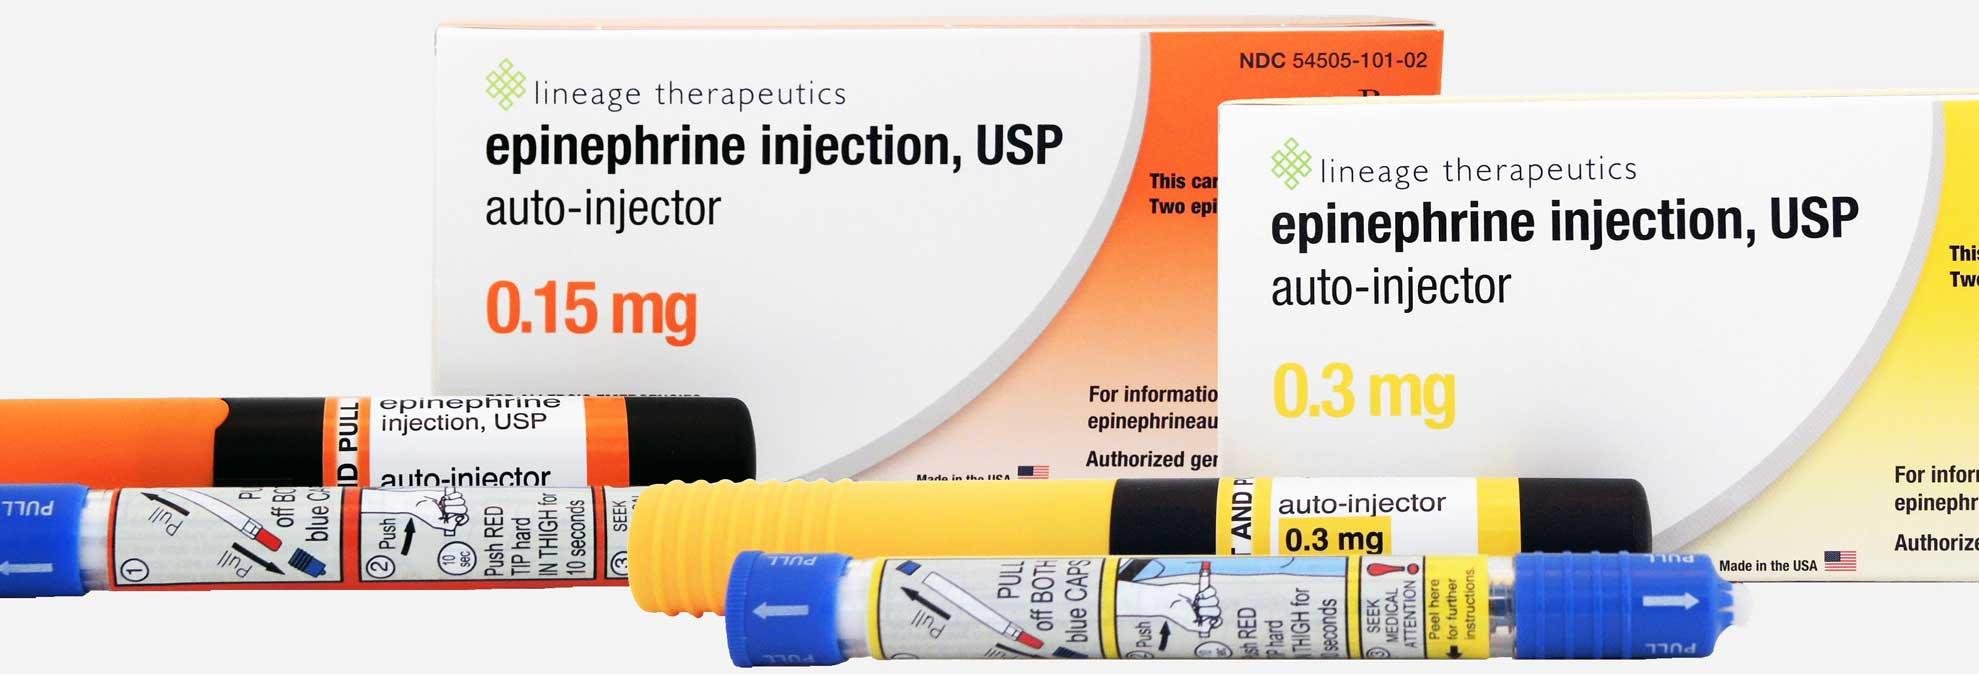 How to Get the Cheaper EpiPen Alternative